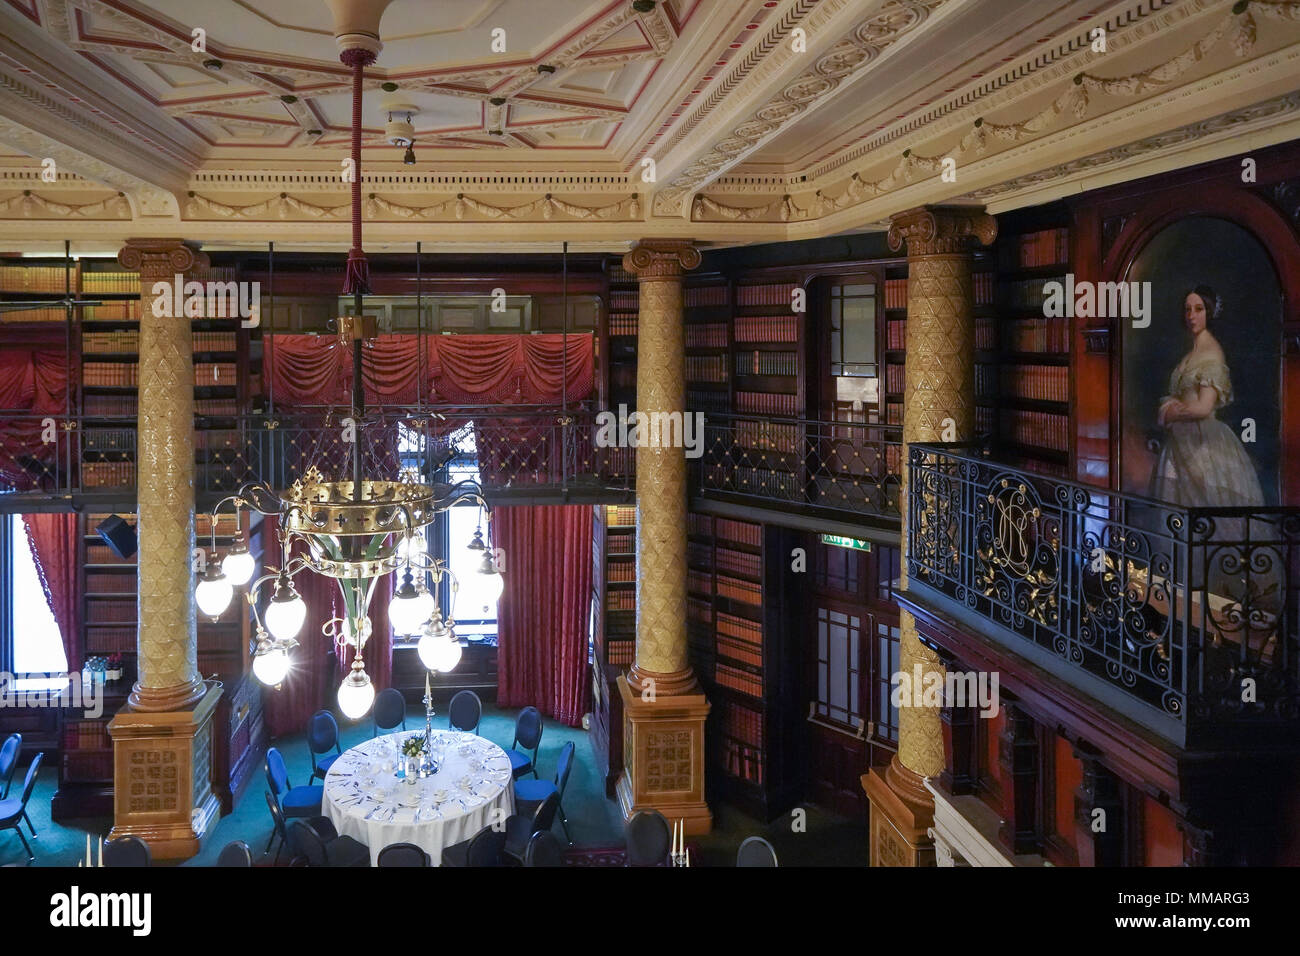 The dining room on the third floor of the National Liberal Club at 1 Whitehall Place in Westminster, London. Photo date: Saturday, April 21, 2018. Pho - Stock Image